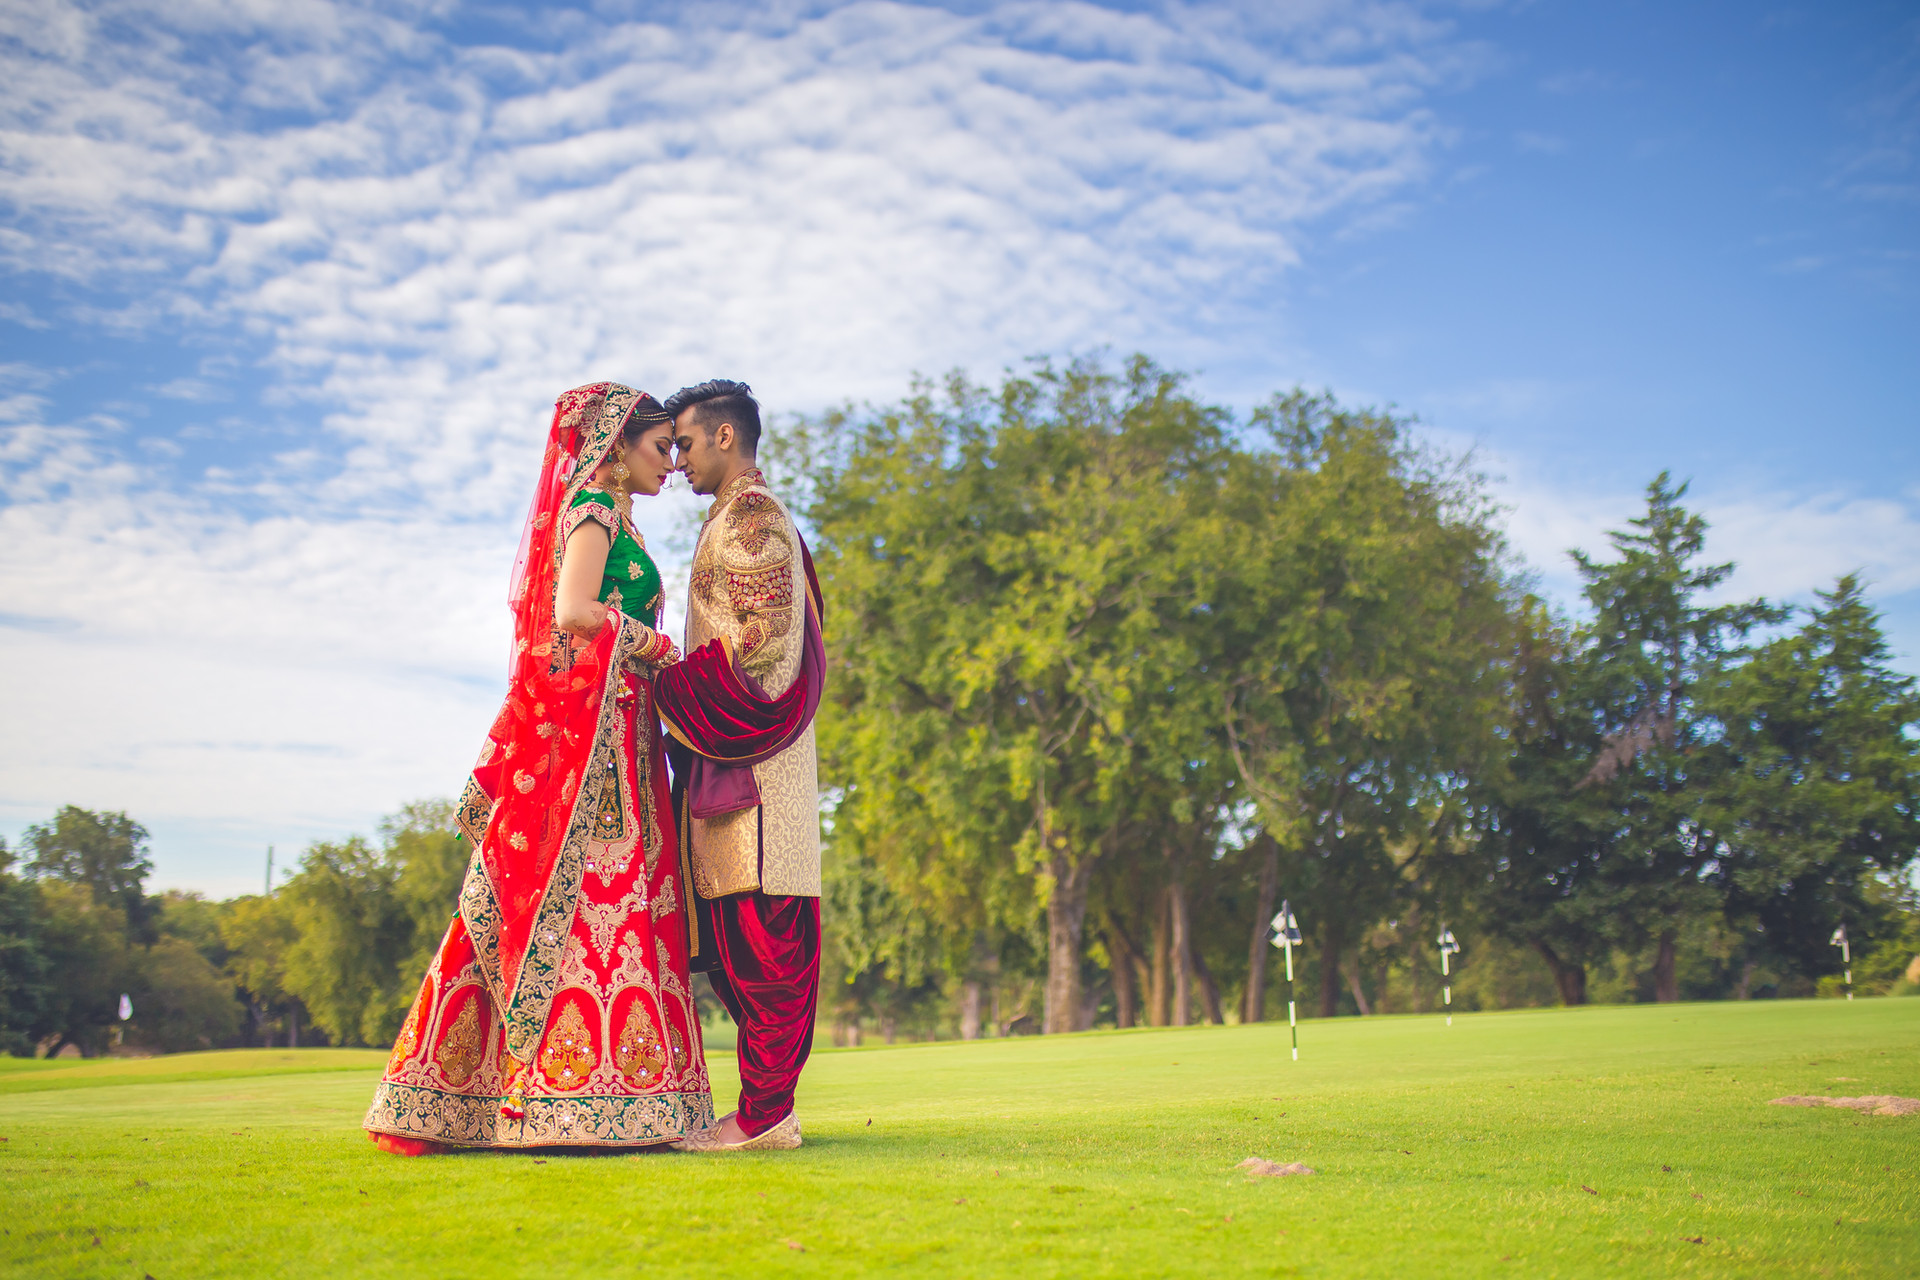 Indain wedding- Bride and Groom. Dallas, Texas.